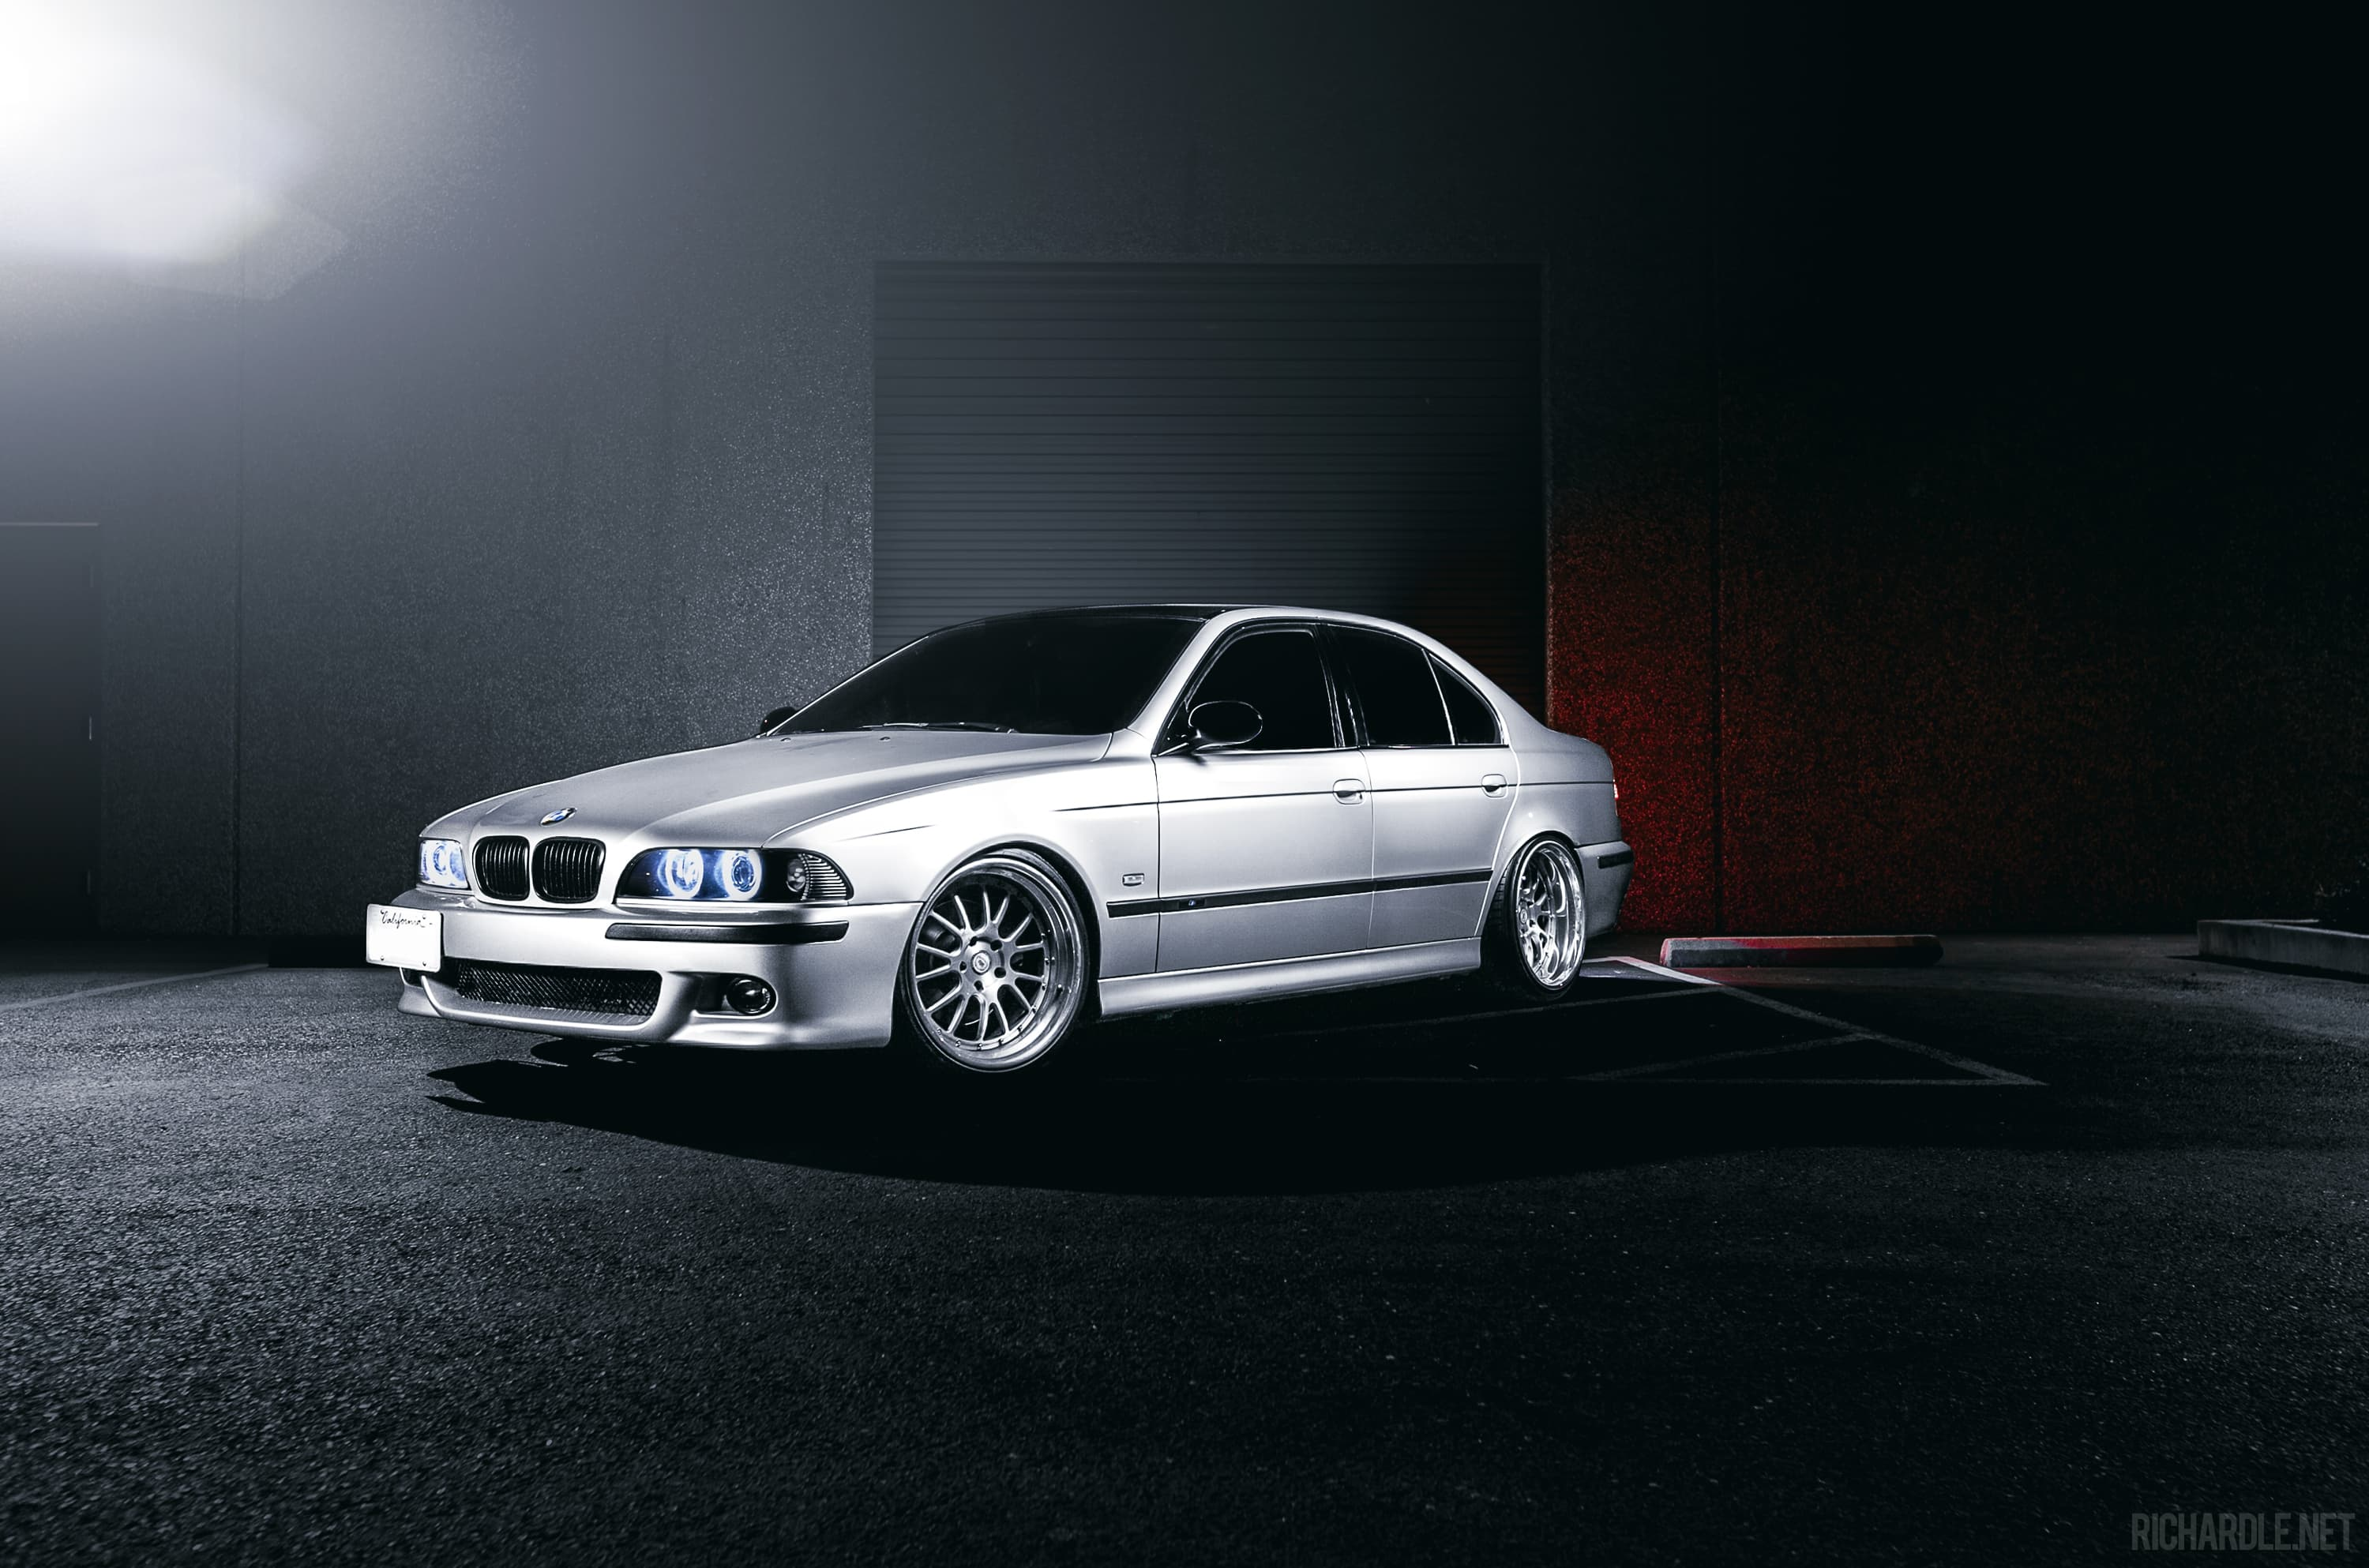 bmw e39 540i 1996 wallpapers high resolution. Black Bedroom Furniture Sets. Home Design Ideas